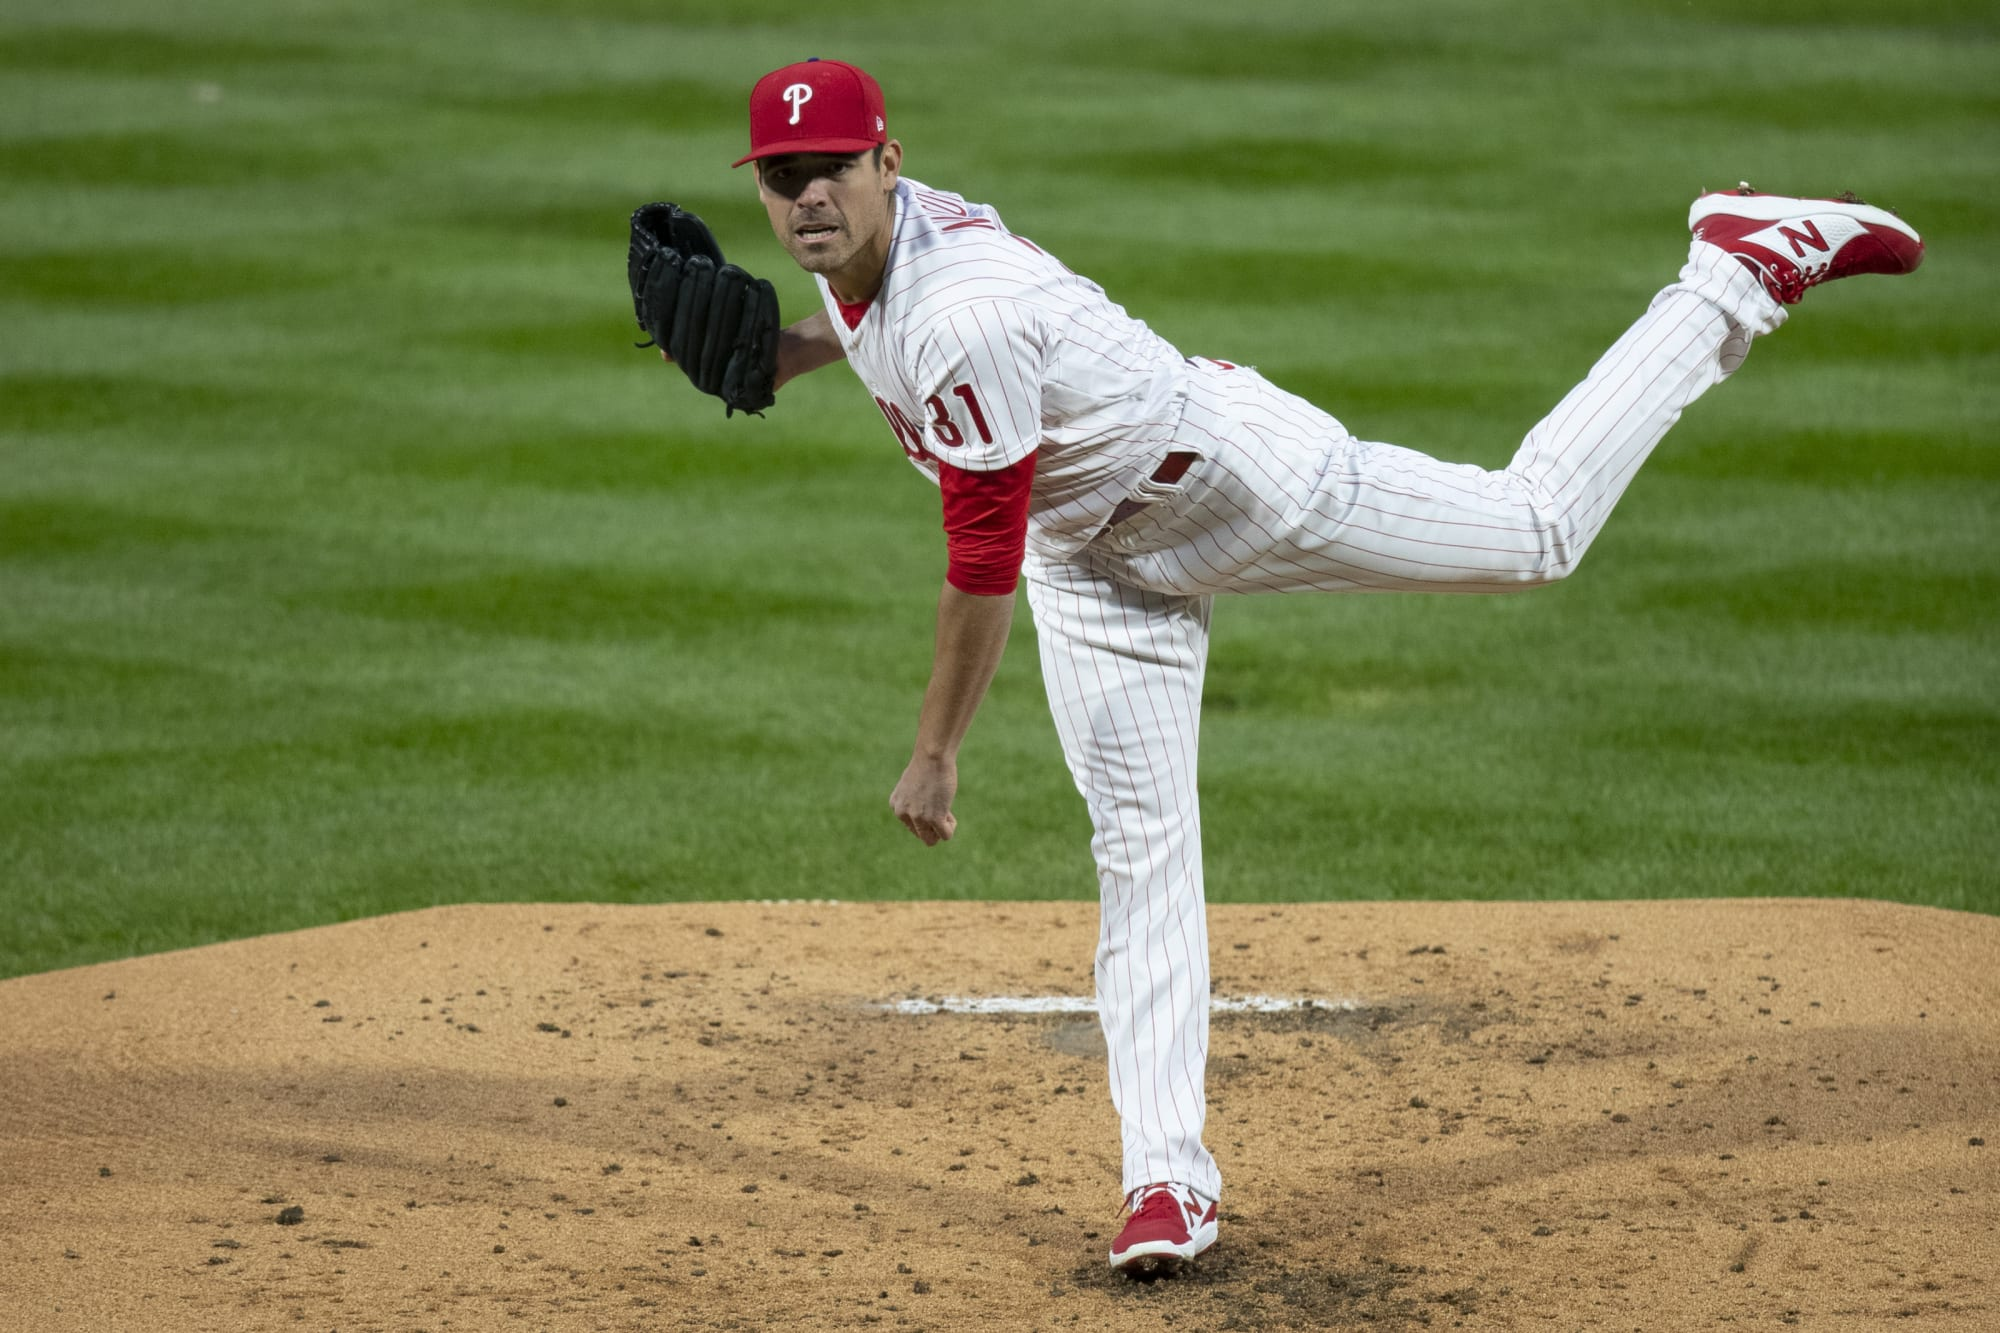 Phillies Game Today: Phillies vs Nationals Odds, Starting Lineup, Pitching Matchup, Predictions, Live Stream, and TV Channel